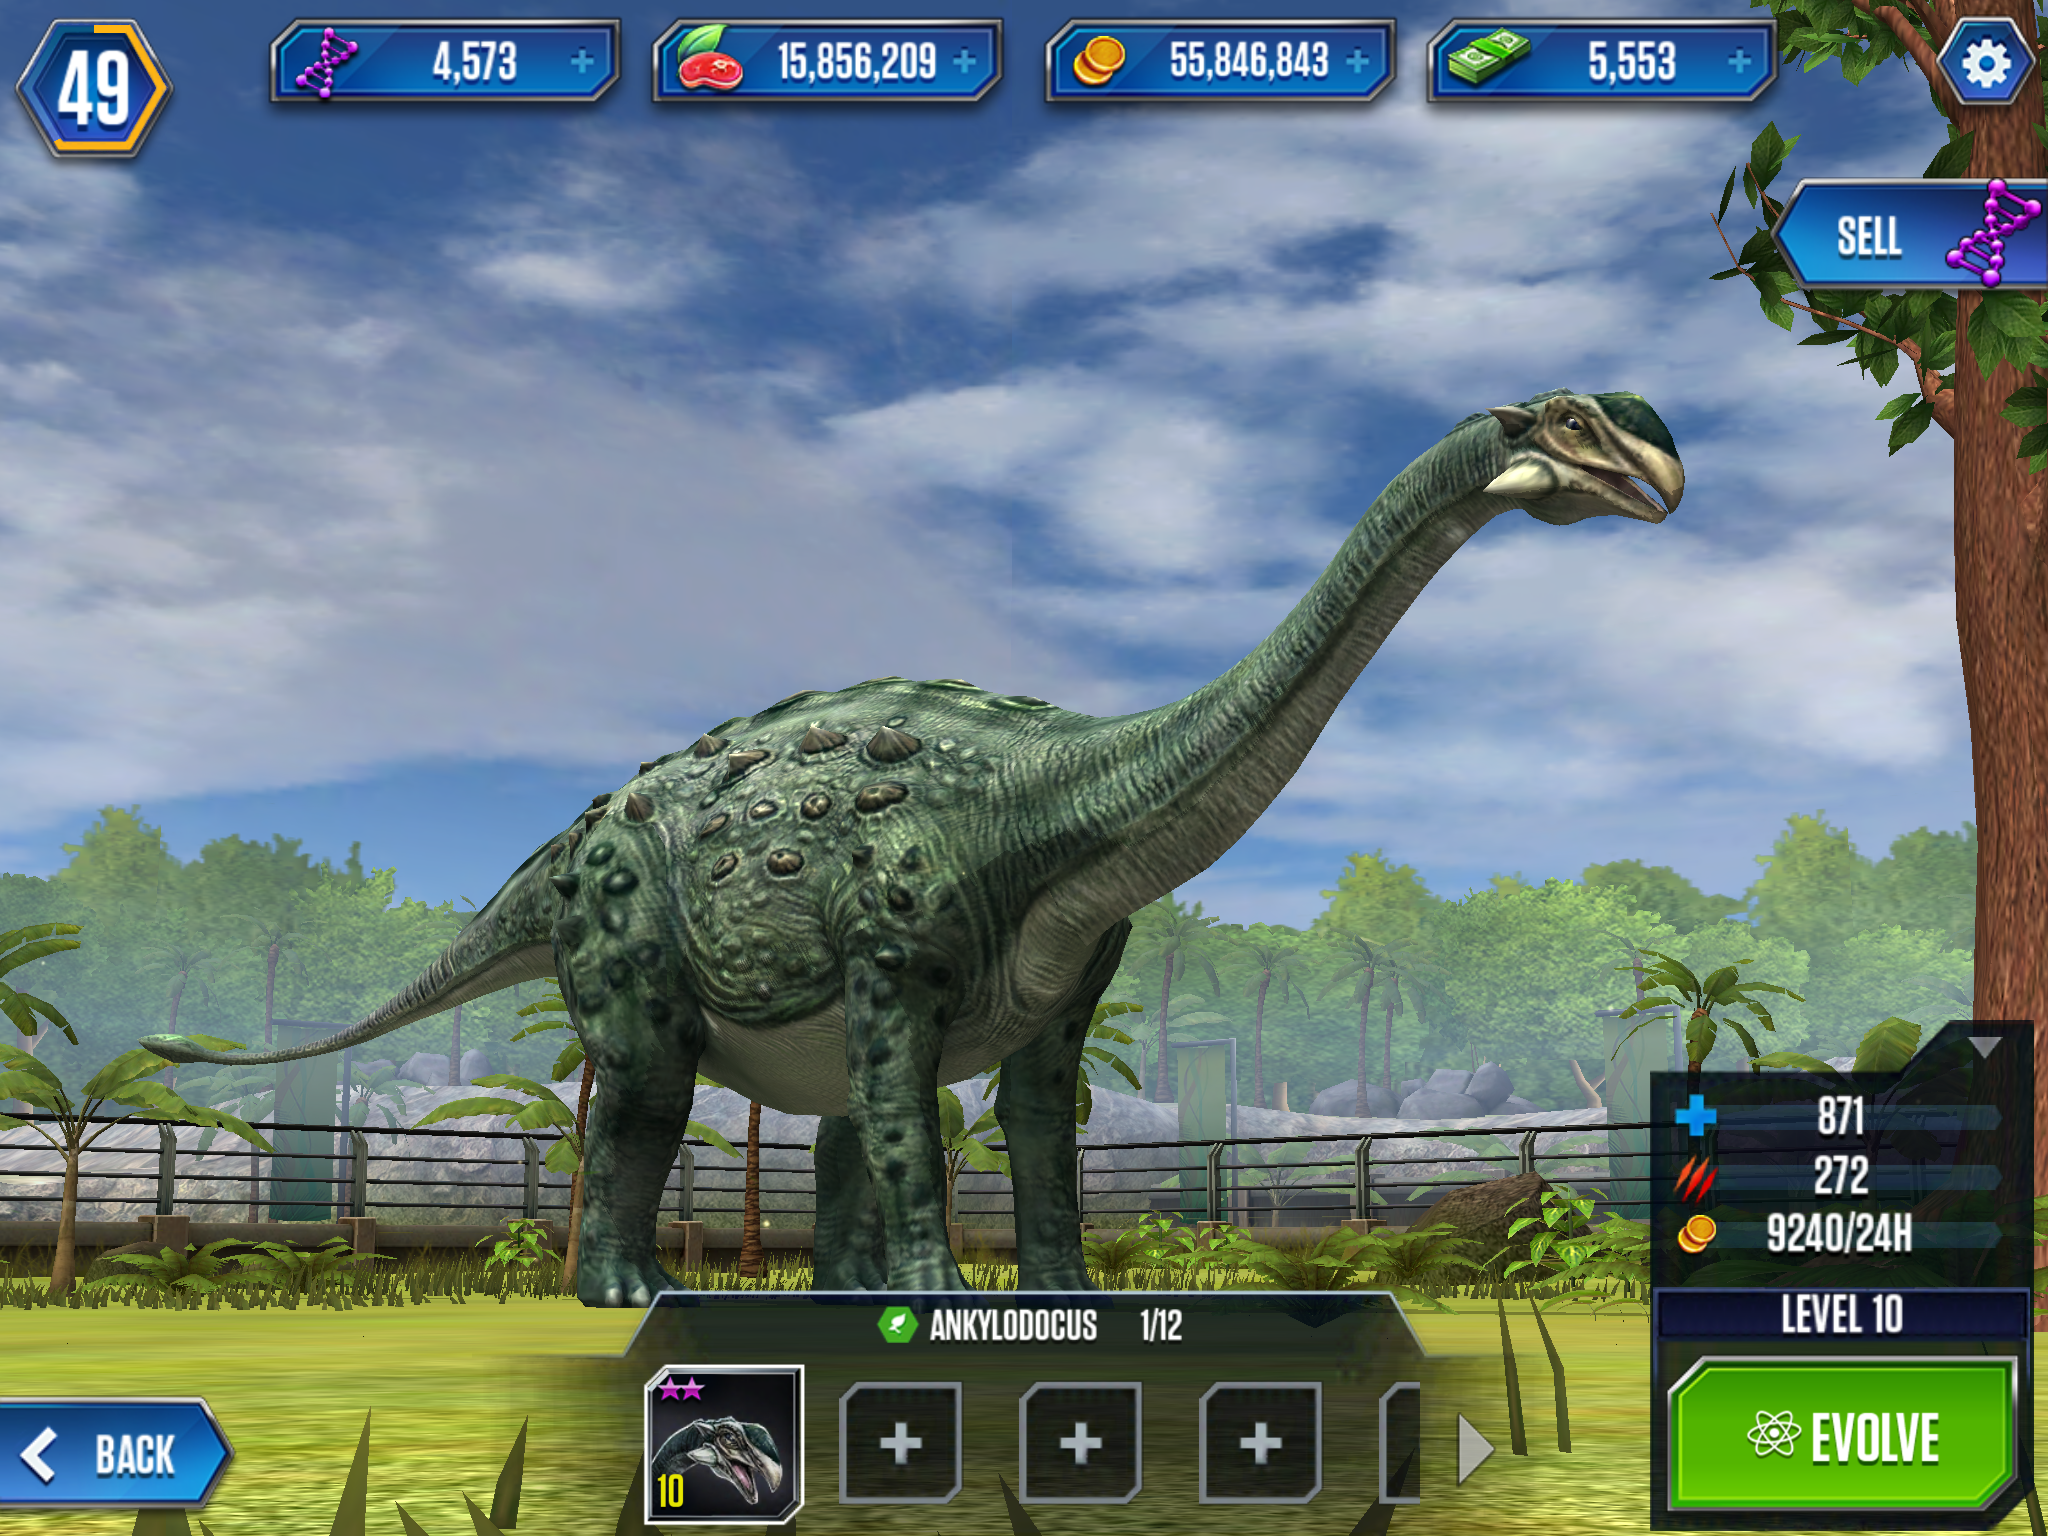 Ankylodocus, a hybrid in Jurassic World: The Game